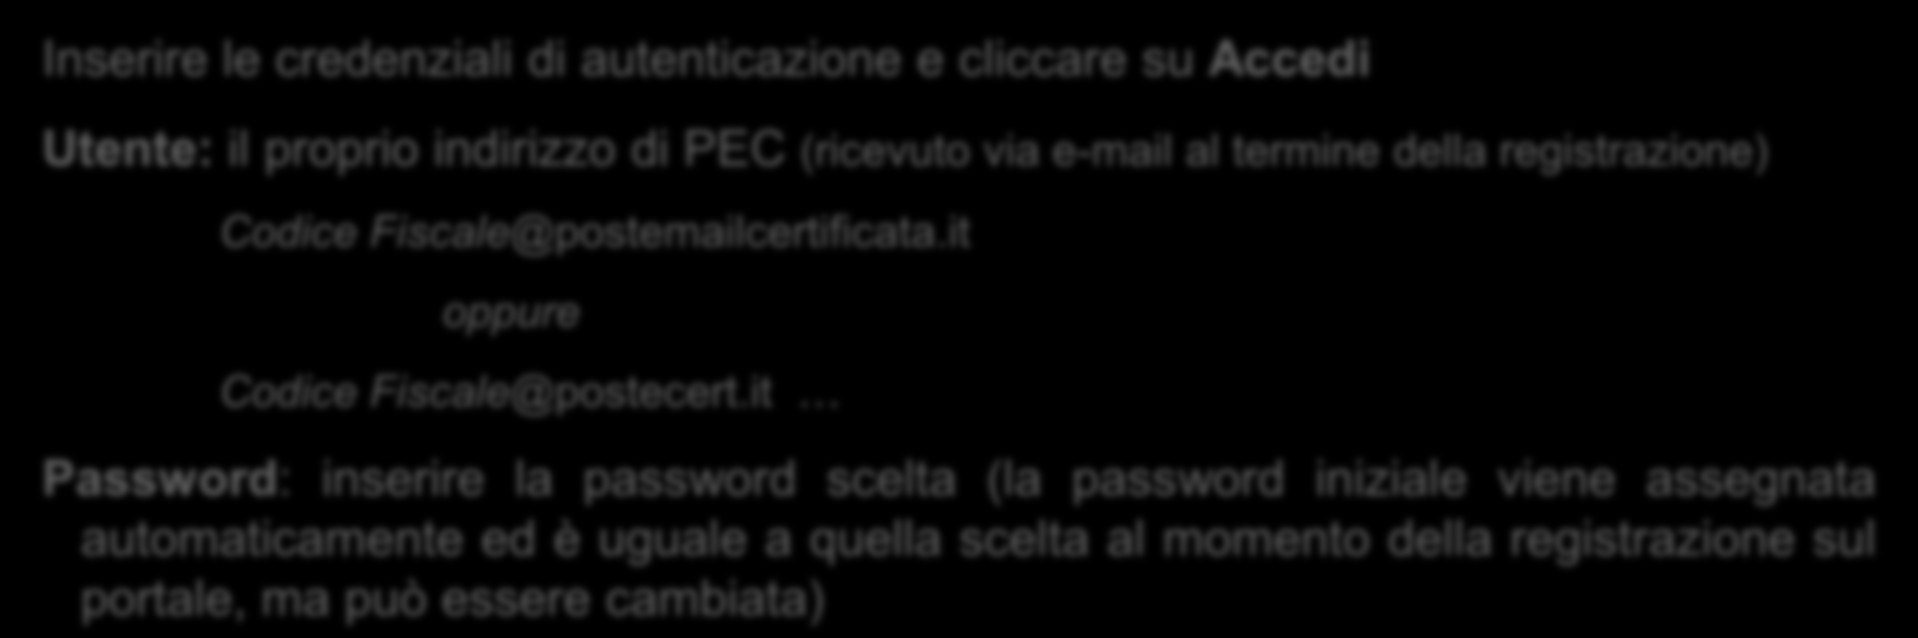 it oppure Codice Fiscale@postecert.